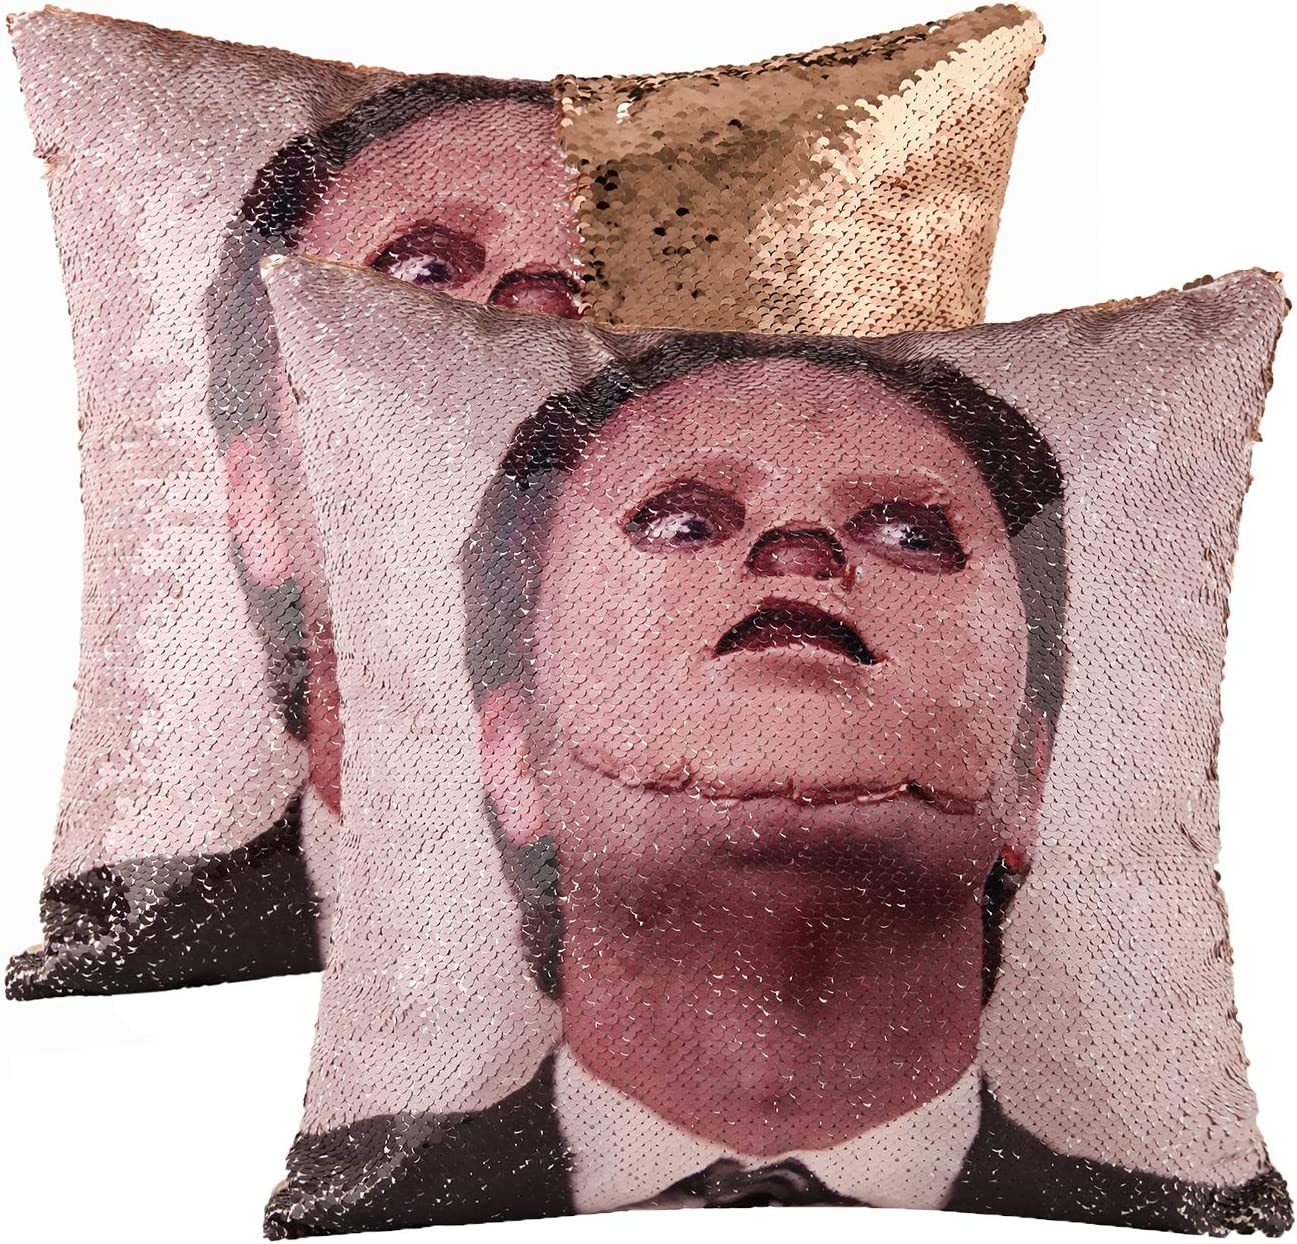 cygnus The Office Dwight Schrute Sequin Pillow Covers Mermaid Magic Reversible Decorative Change Color Pillow Covers 16x16 inch Funny Gag White Elephant Gifts,Champagne Gold